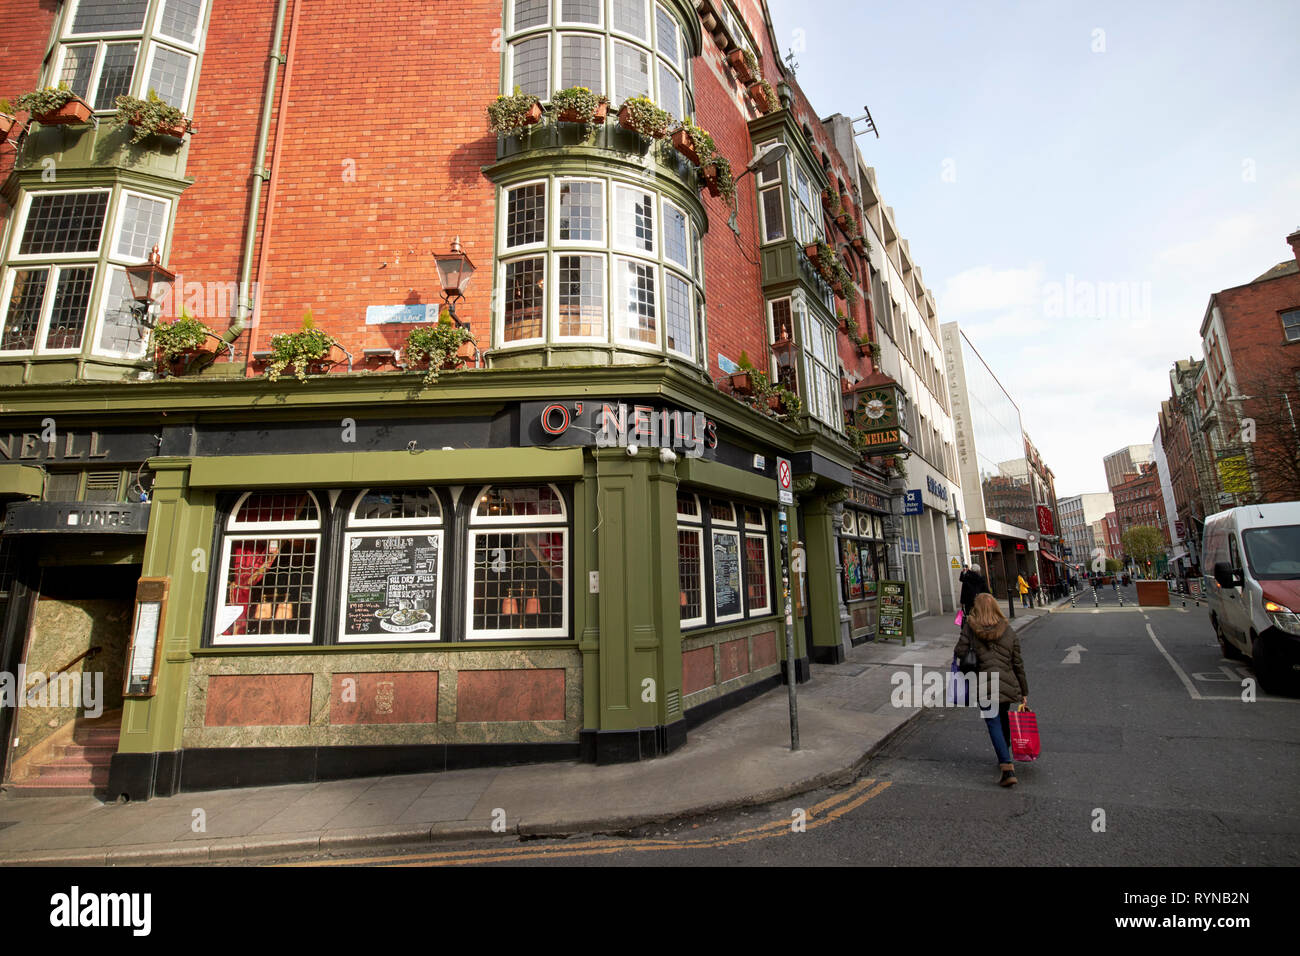 O'Neills pub on the corner of church lane and Suffolk street Dublin Republic of Ireland Europe - Stock Image